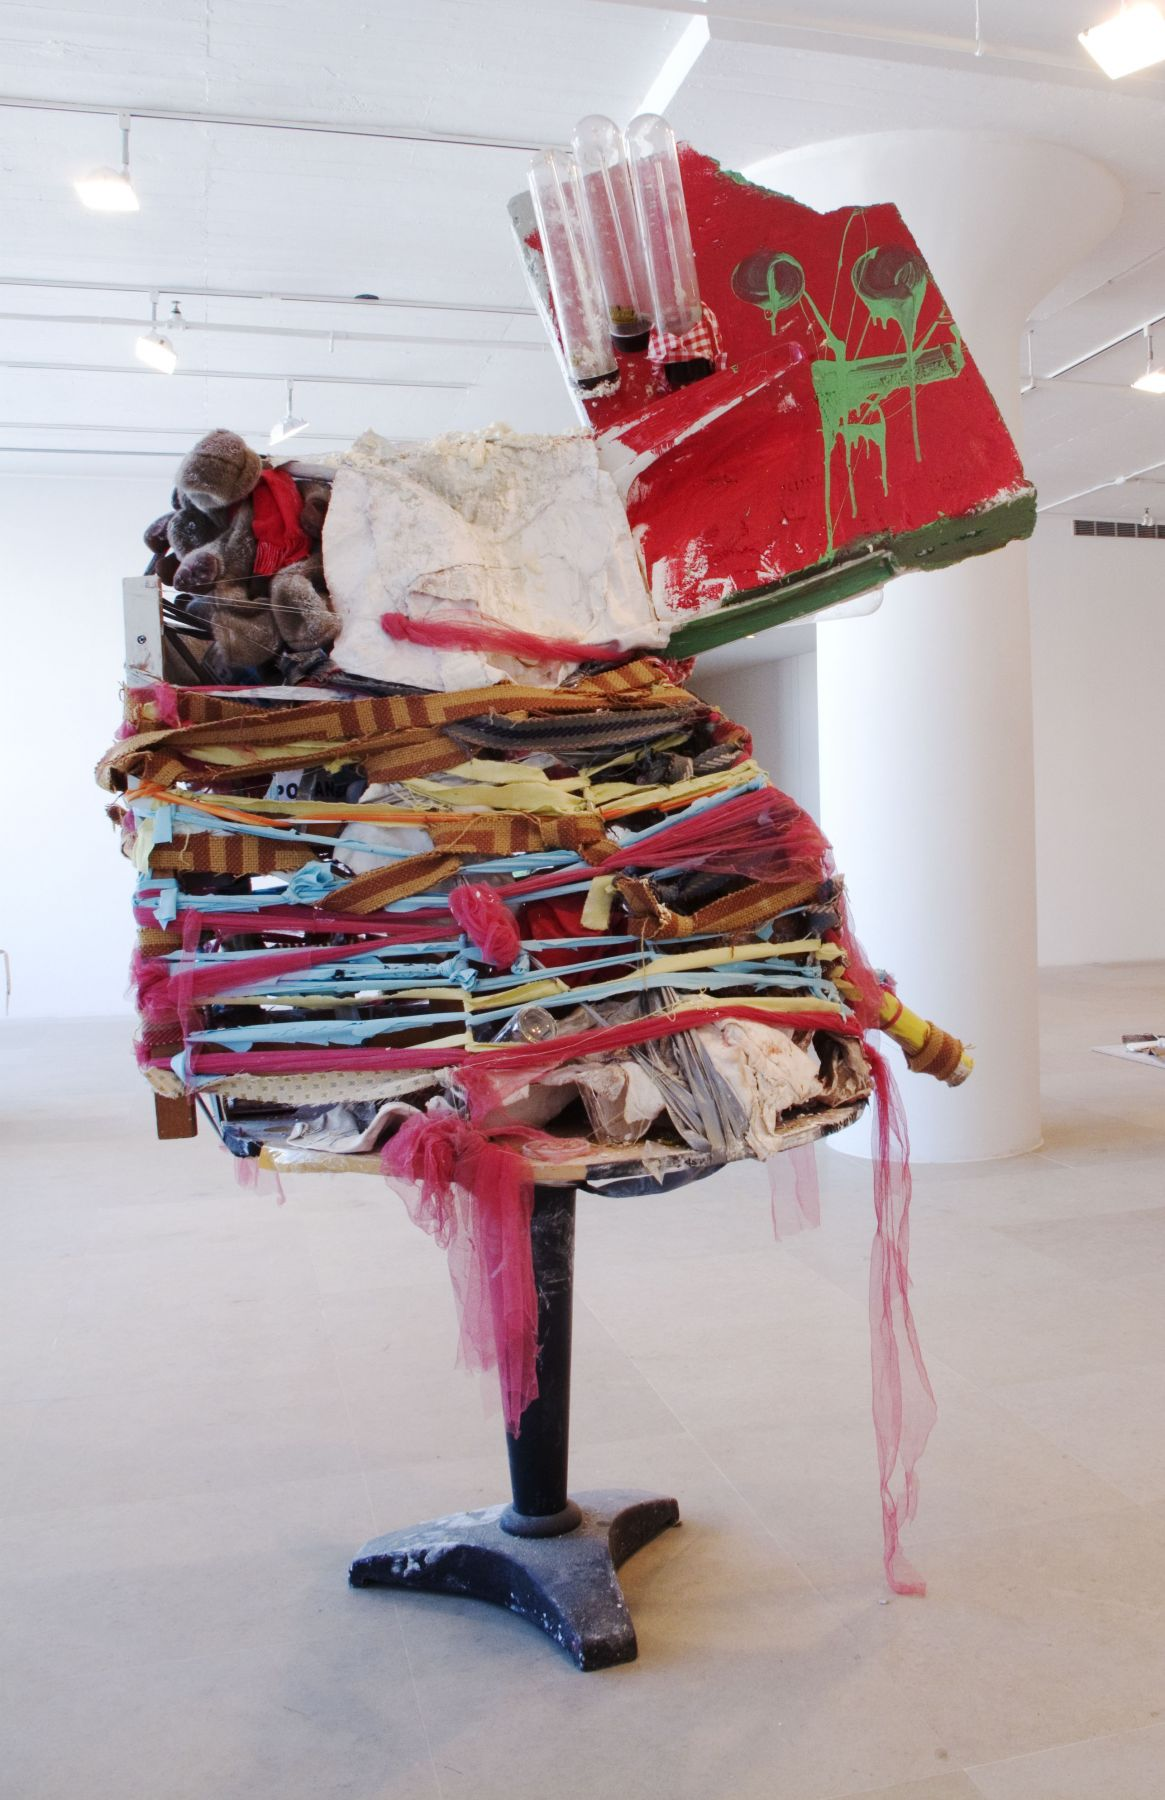 Untitled, 2010, mixed media, 96 x 95 x 59 inches, Installation view, Greene Naftali, New York, 2010